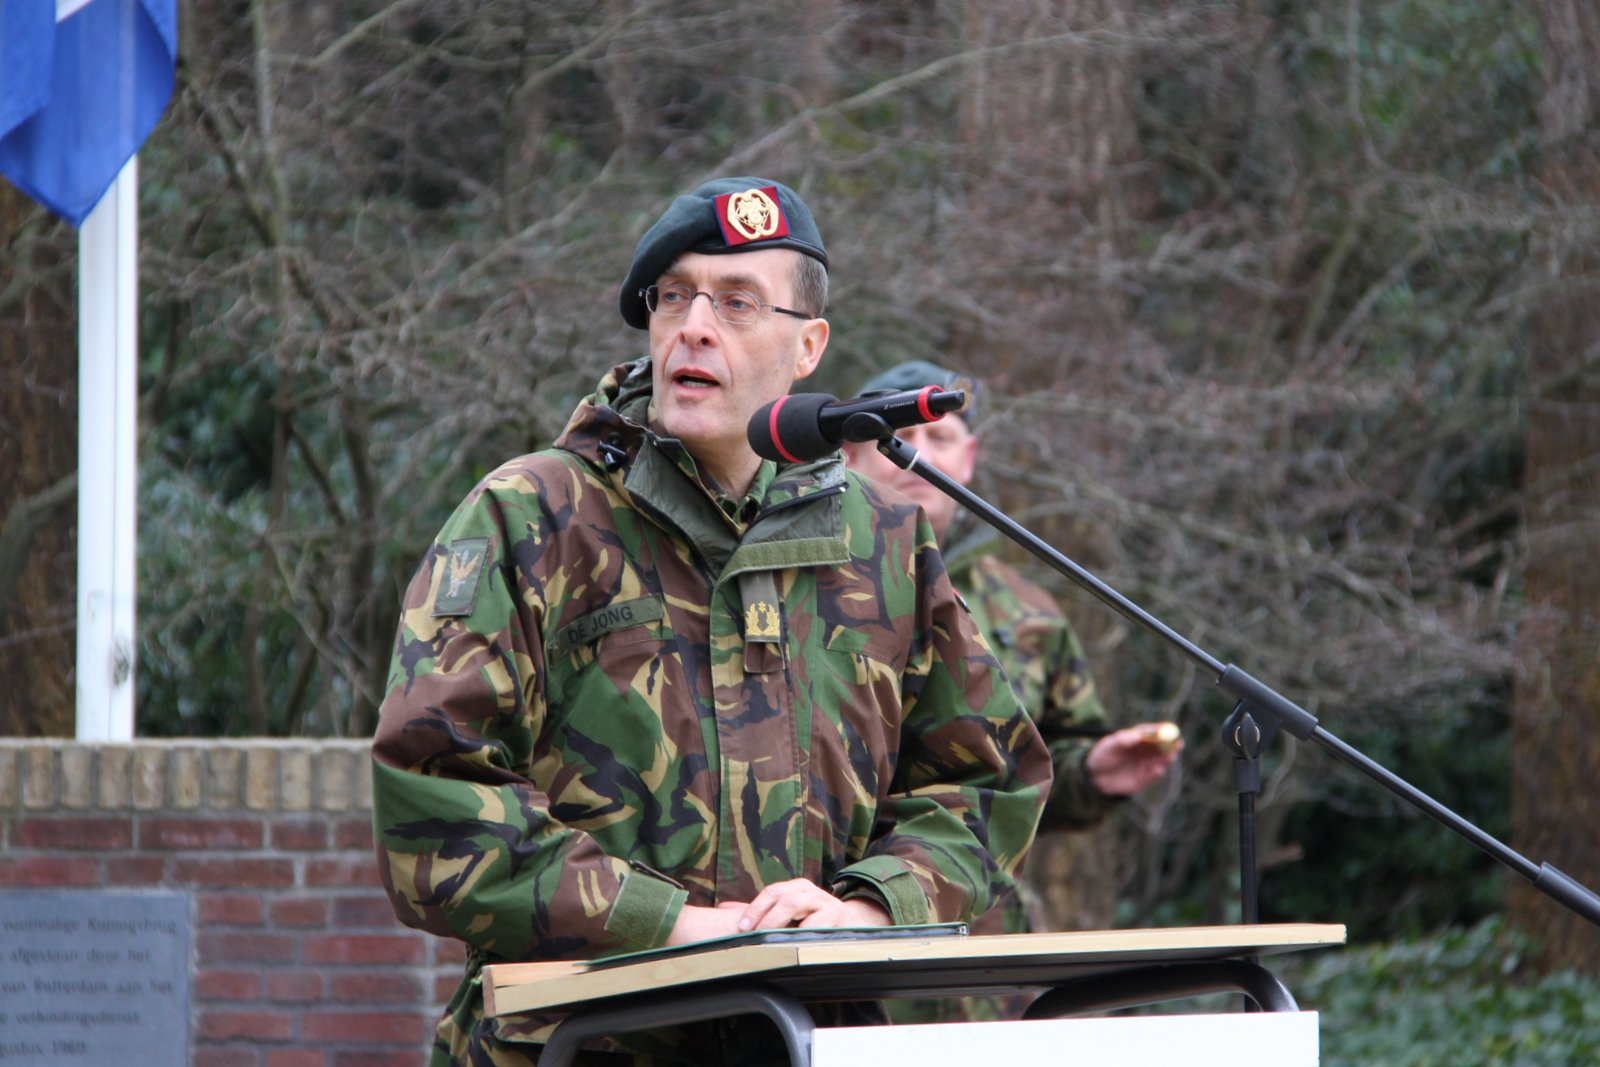 regiment_142_jaar_20160219_1409396418